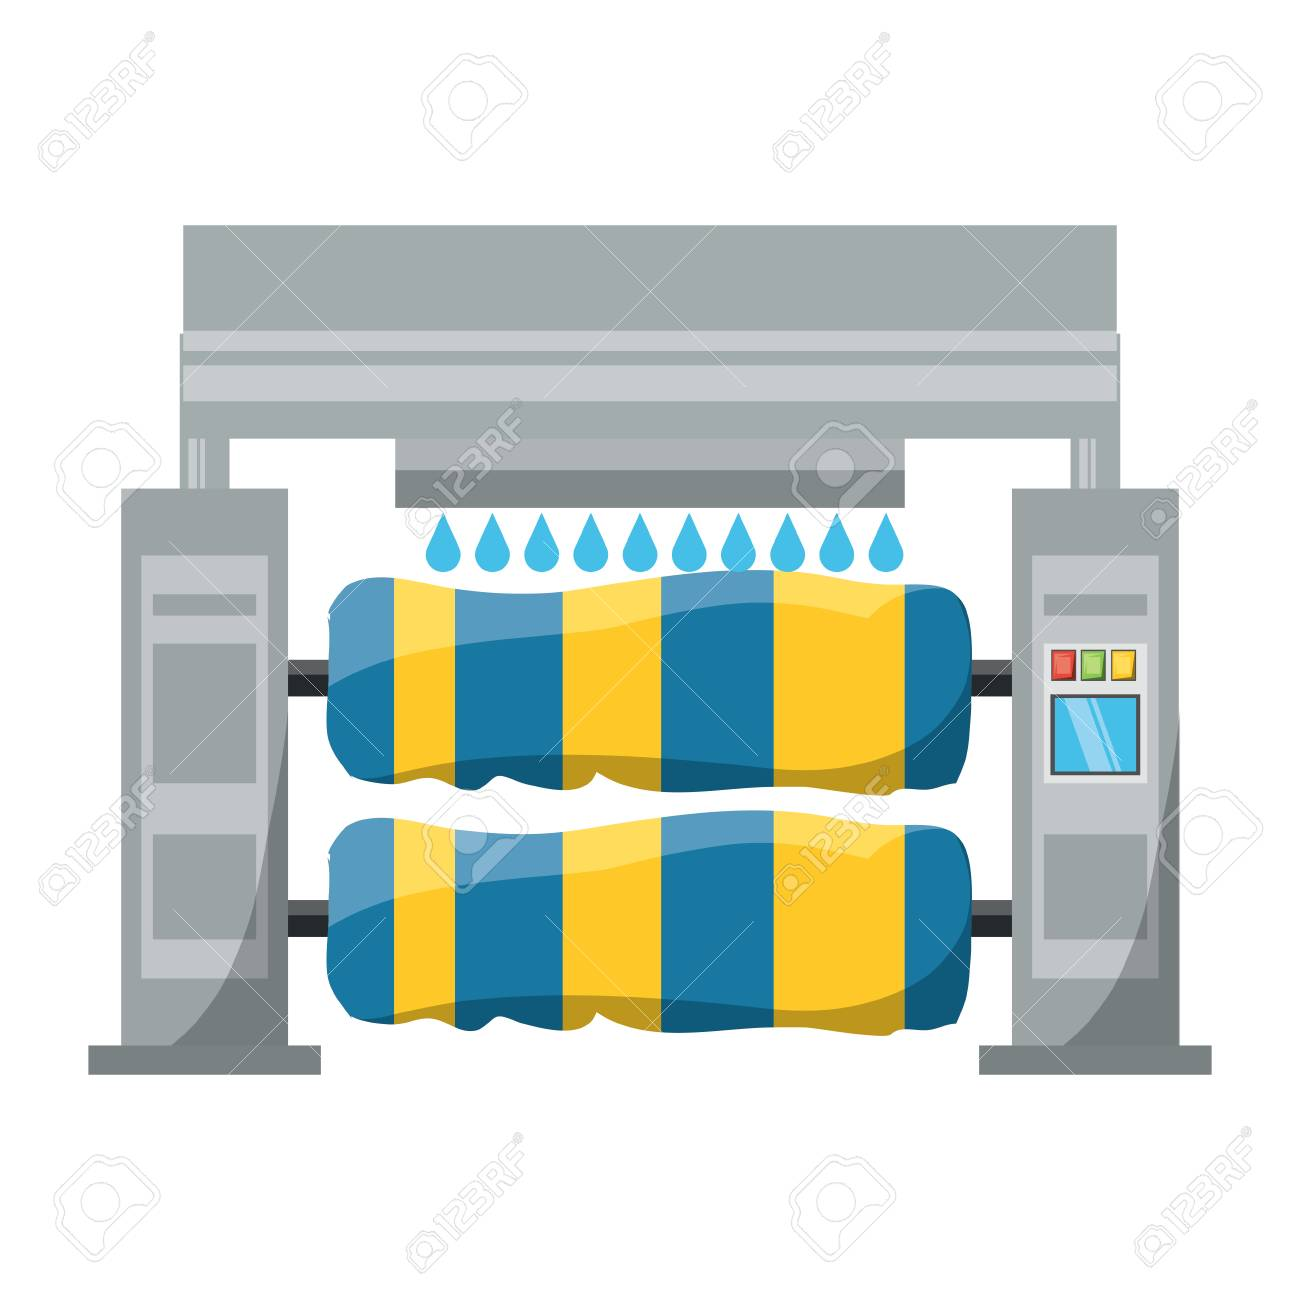 hight resolution of car wash machine icon over white background colorful design vector illustration stock vector 92350516